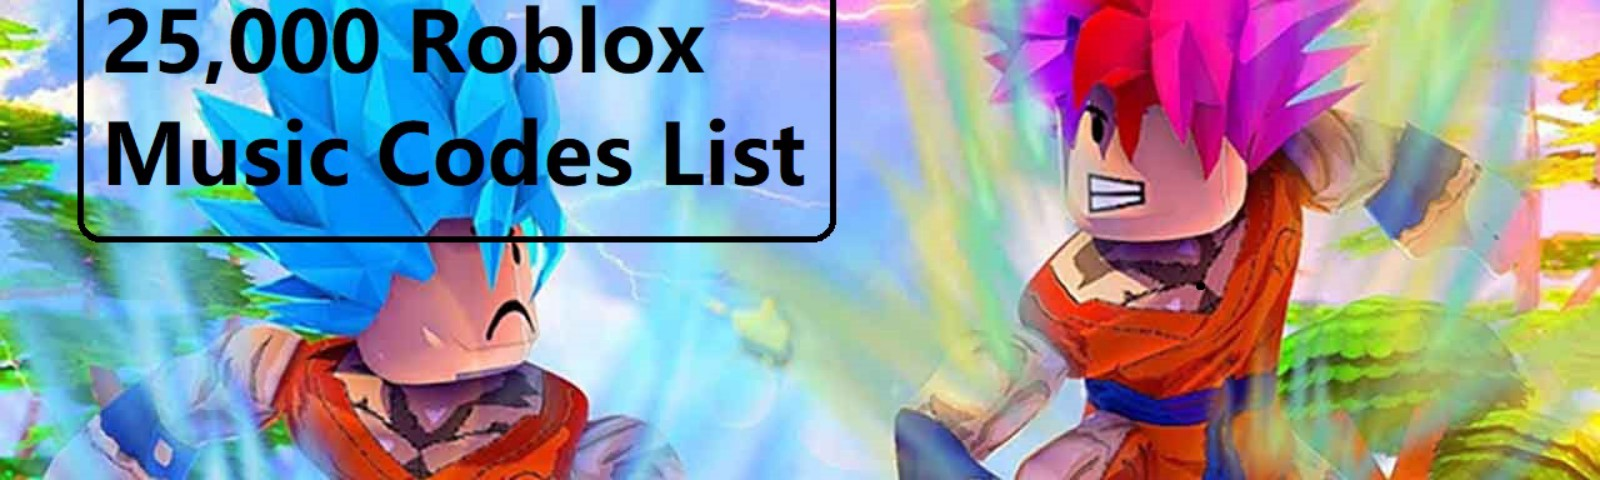 25 000 Roblox Music Codes Verified List 2020 By Crowekevin Medium